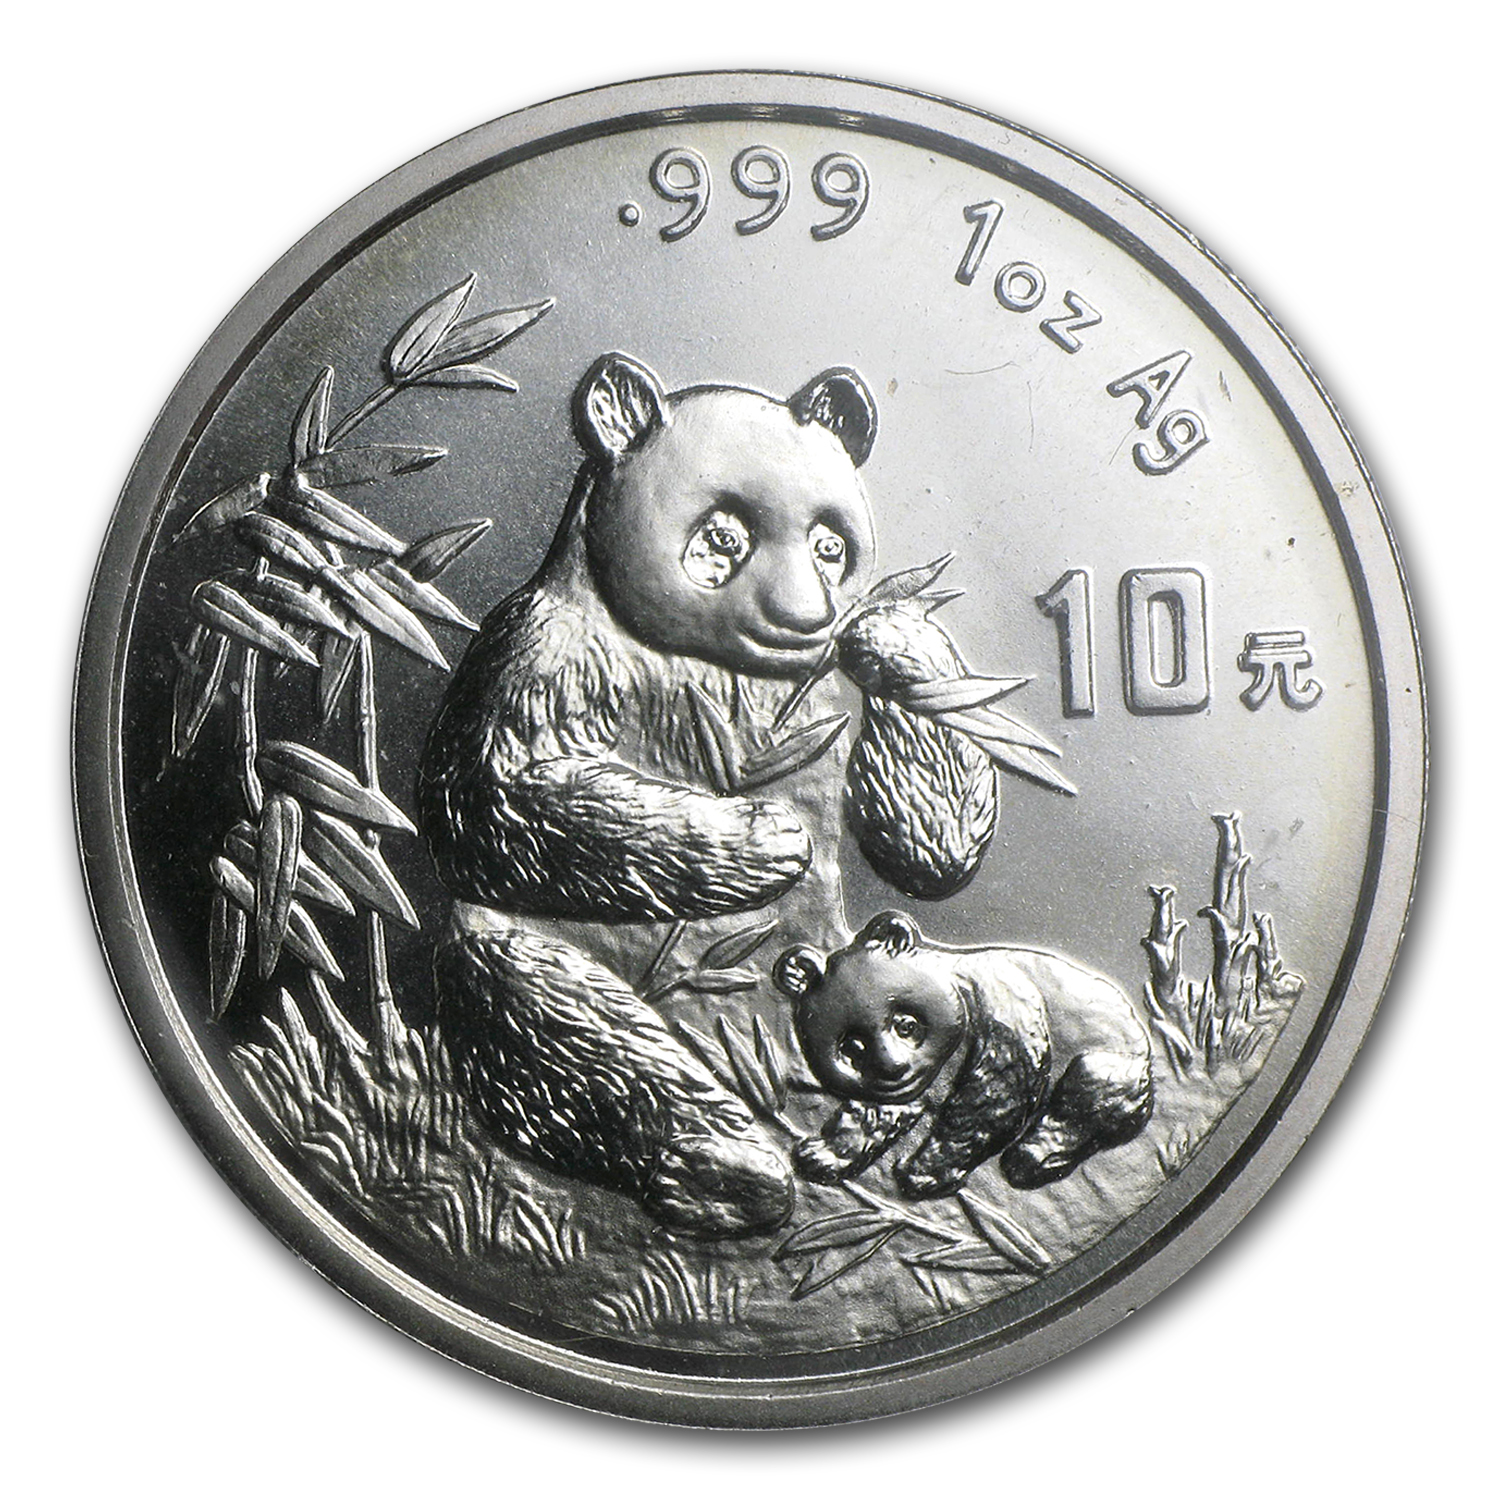 1996 China 1 oz Silver Panda Large Date BU (Sealed)